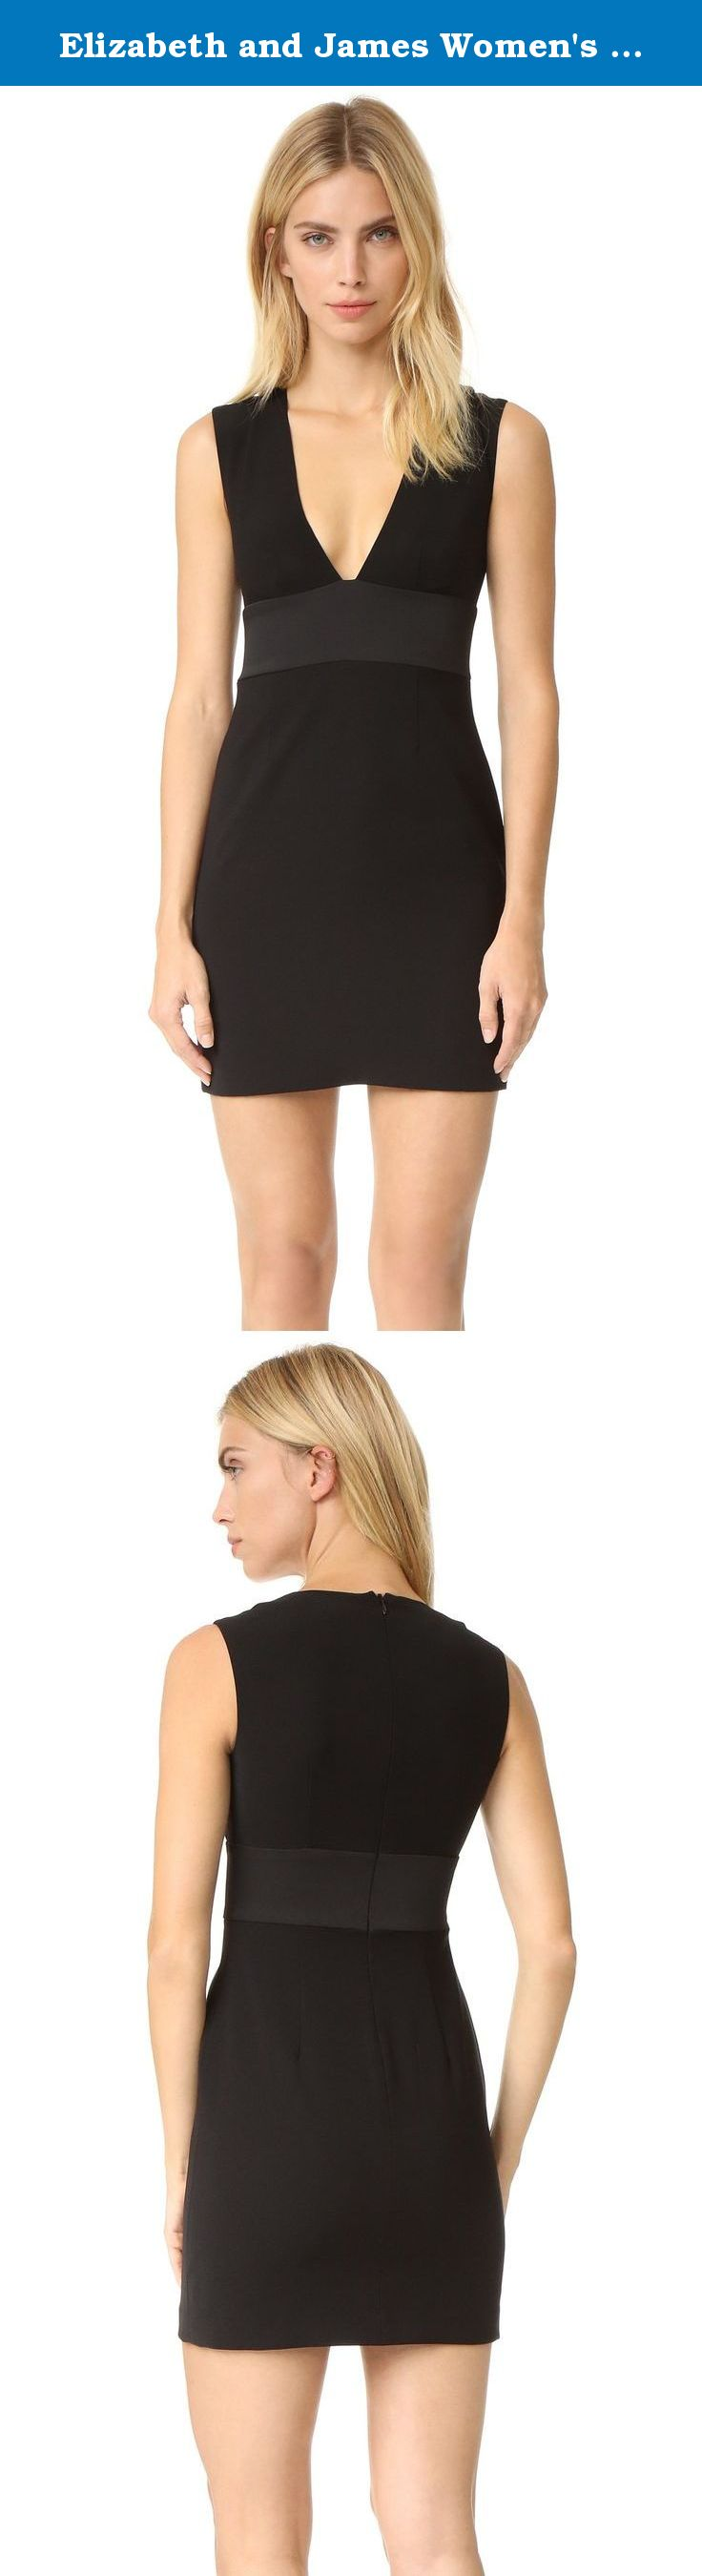 Elizabeth and James Women's Maya Dress, Black, 12. An inside-out panel defines the waist of this simple Elizabeth and James sheath dress, and the plunging neckline adds sultry style. Hidden back zip. Lined.